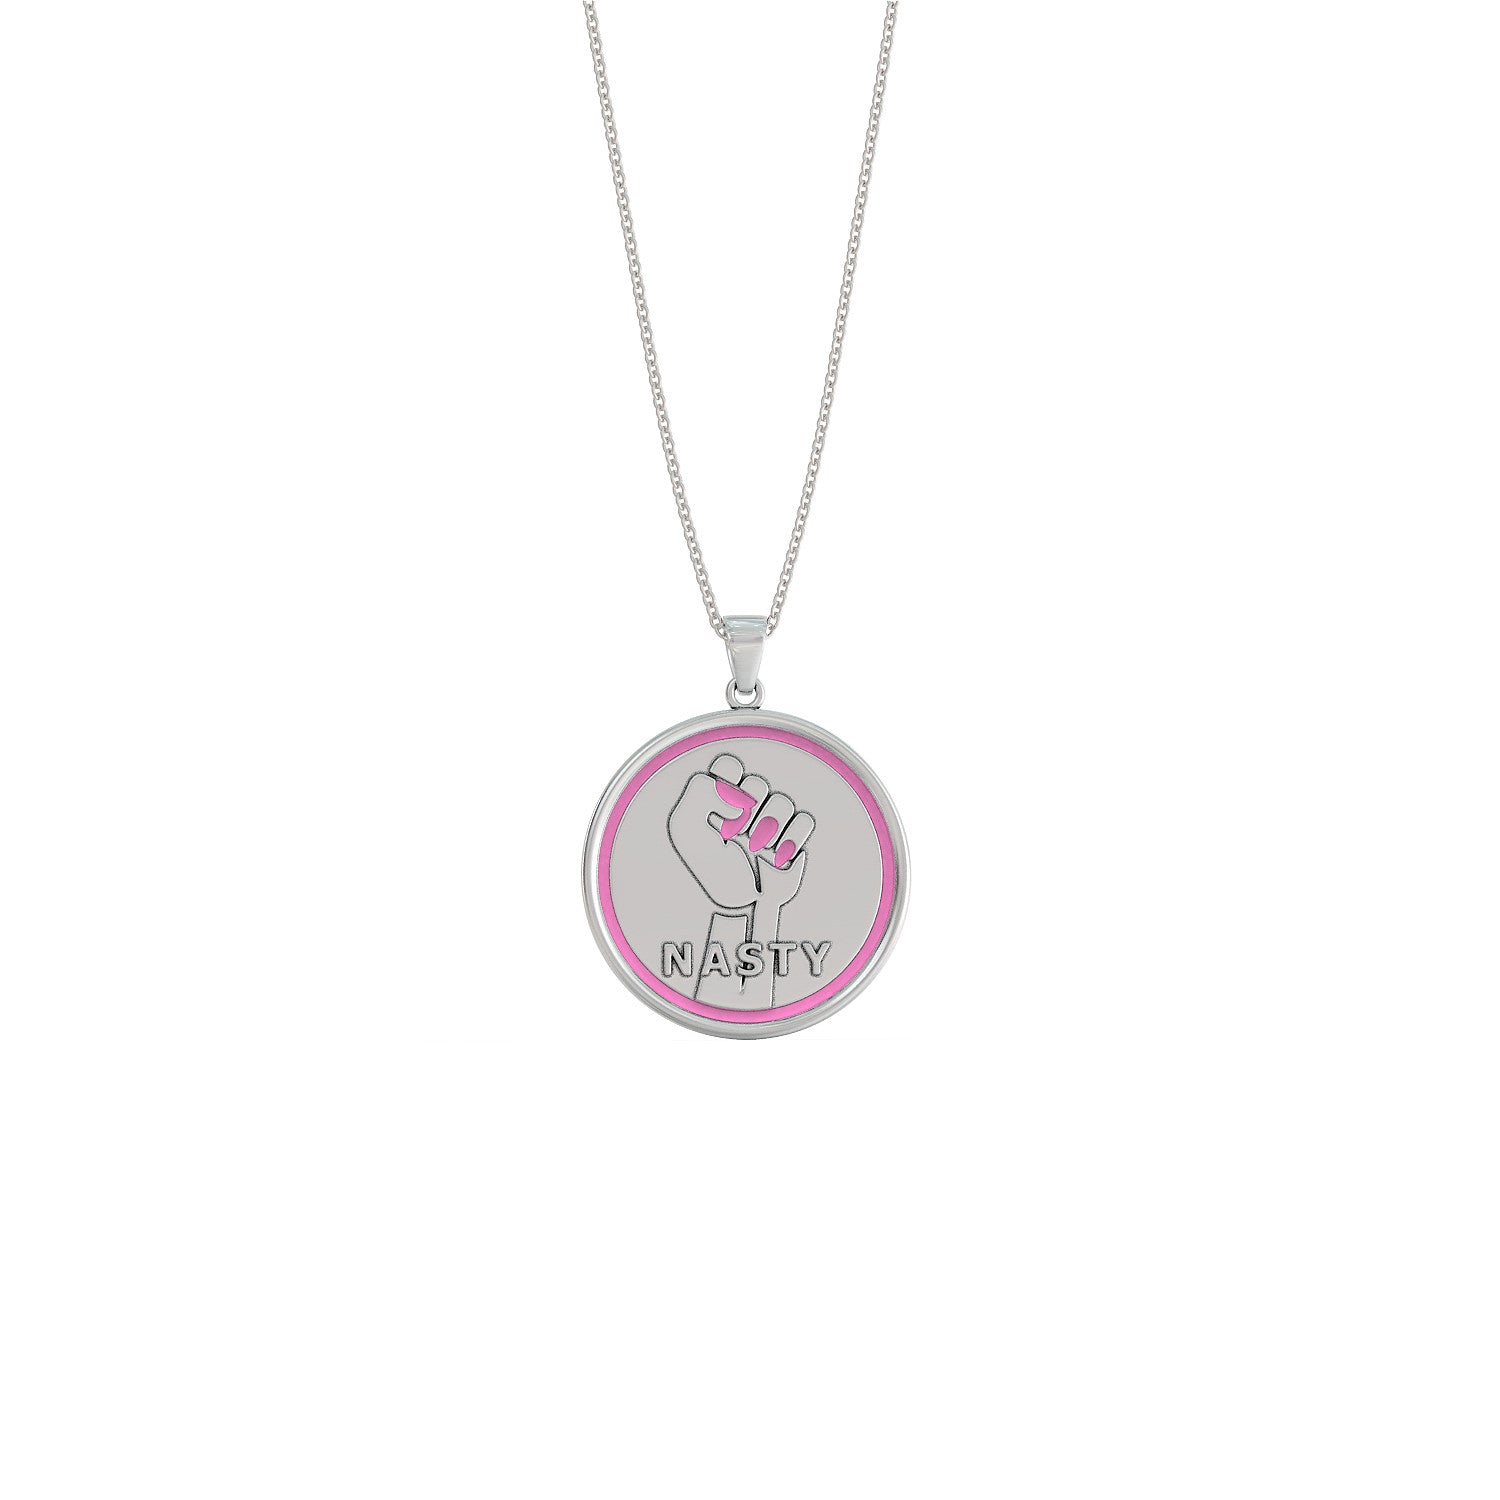 pink luxanty b collana golfista u yellow gold pendant golfer in lady d donna plated negozio necklace bianco en argento silver rhodium woman white or